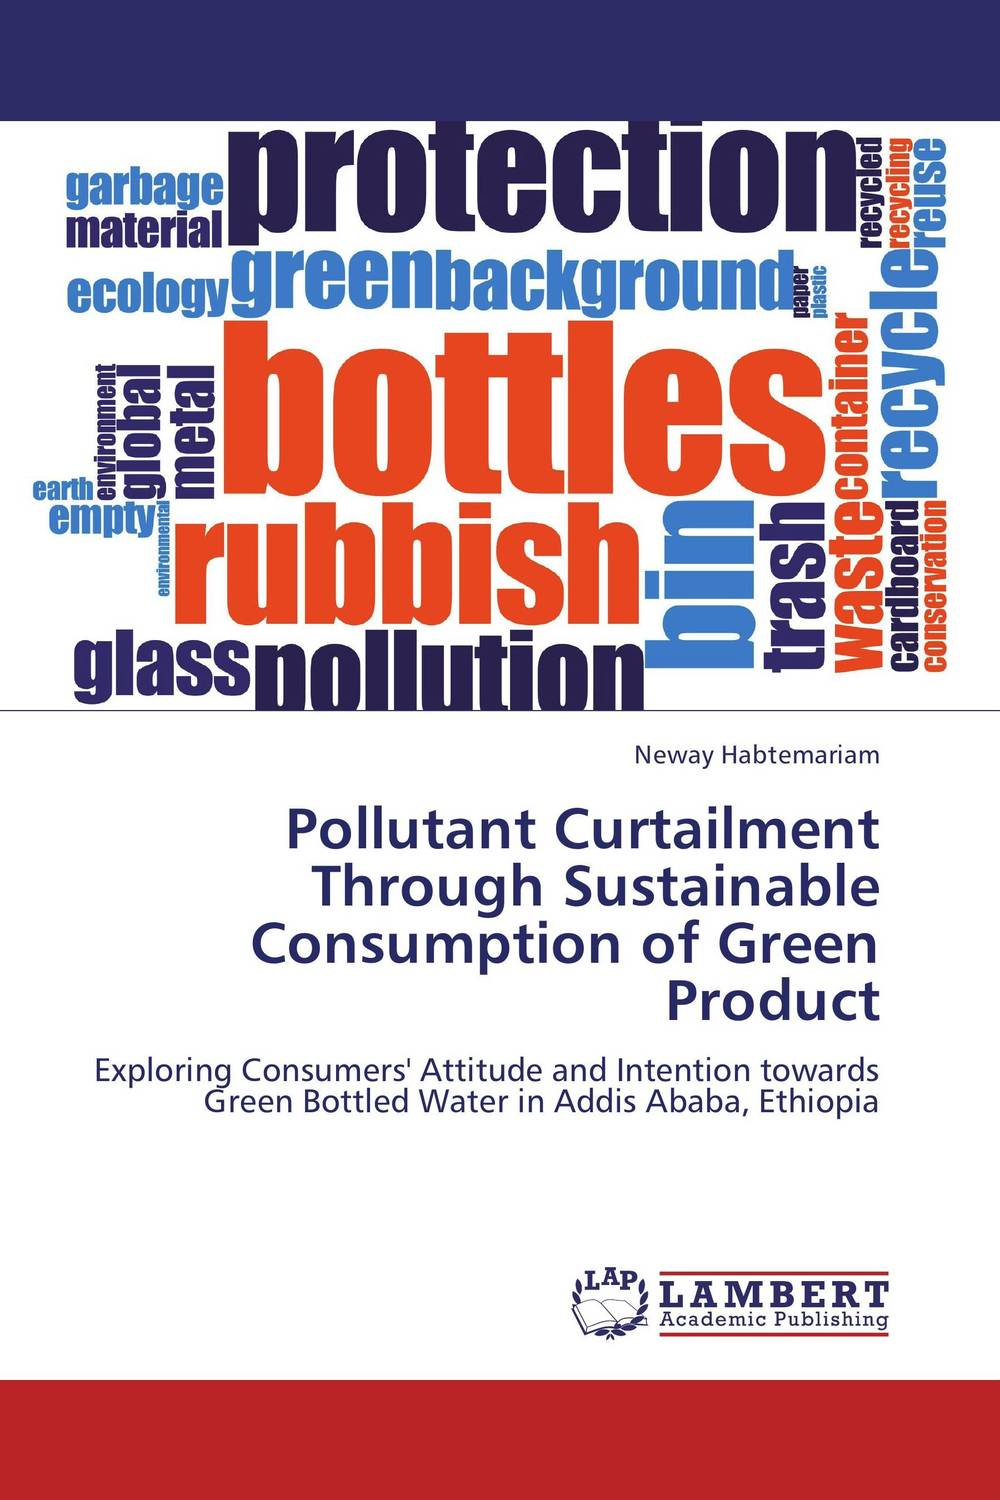 Pollutant Curtailment Through Sustainable Consumption of Green Product building value through human resources